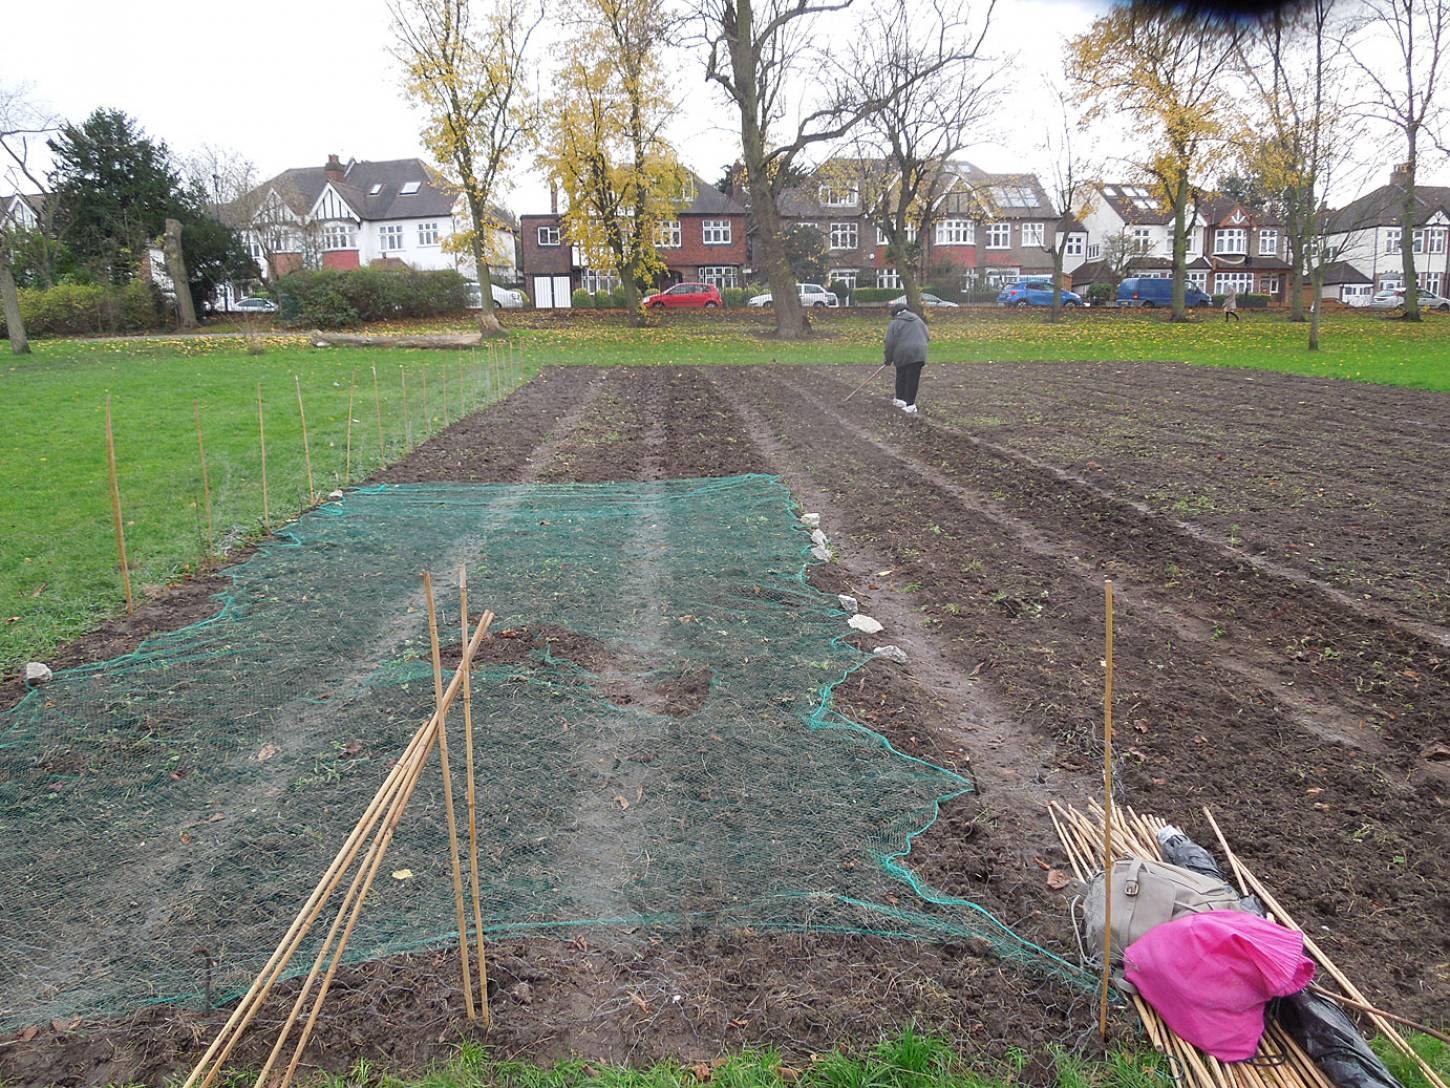 Day 4 sowing on Ruskin PArk With Annick Alet from the <A href='http://www.brixtonwindmill.org/home' target=_blank>Friends of Windmill Gardens</a> - 2:42pm&nbsp;3<sup>rd</sup>&nbsp;Dec.&nbsp;'15